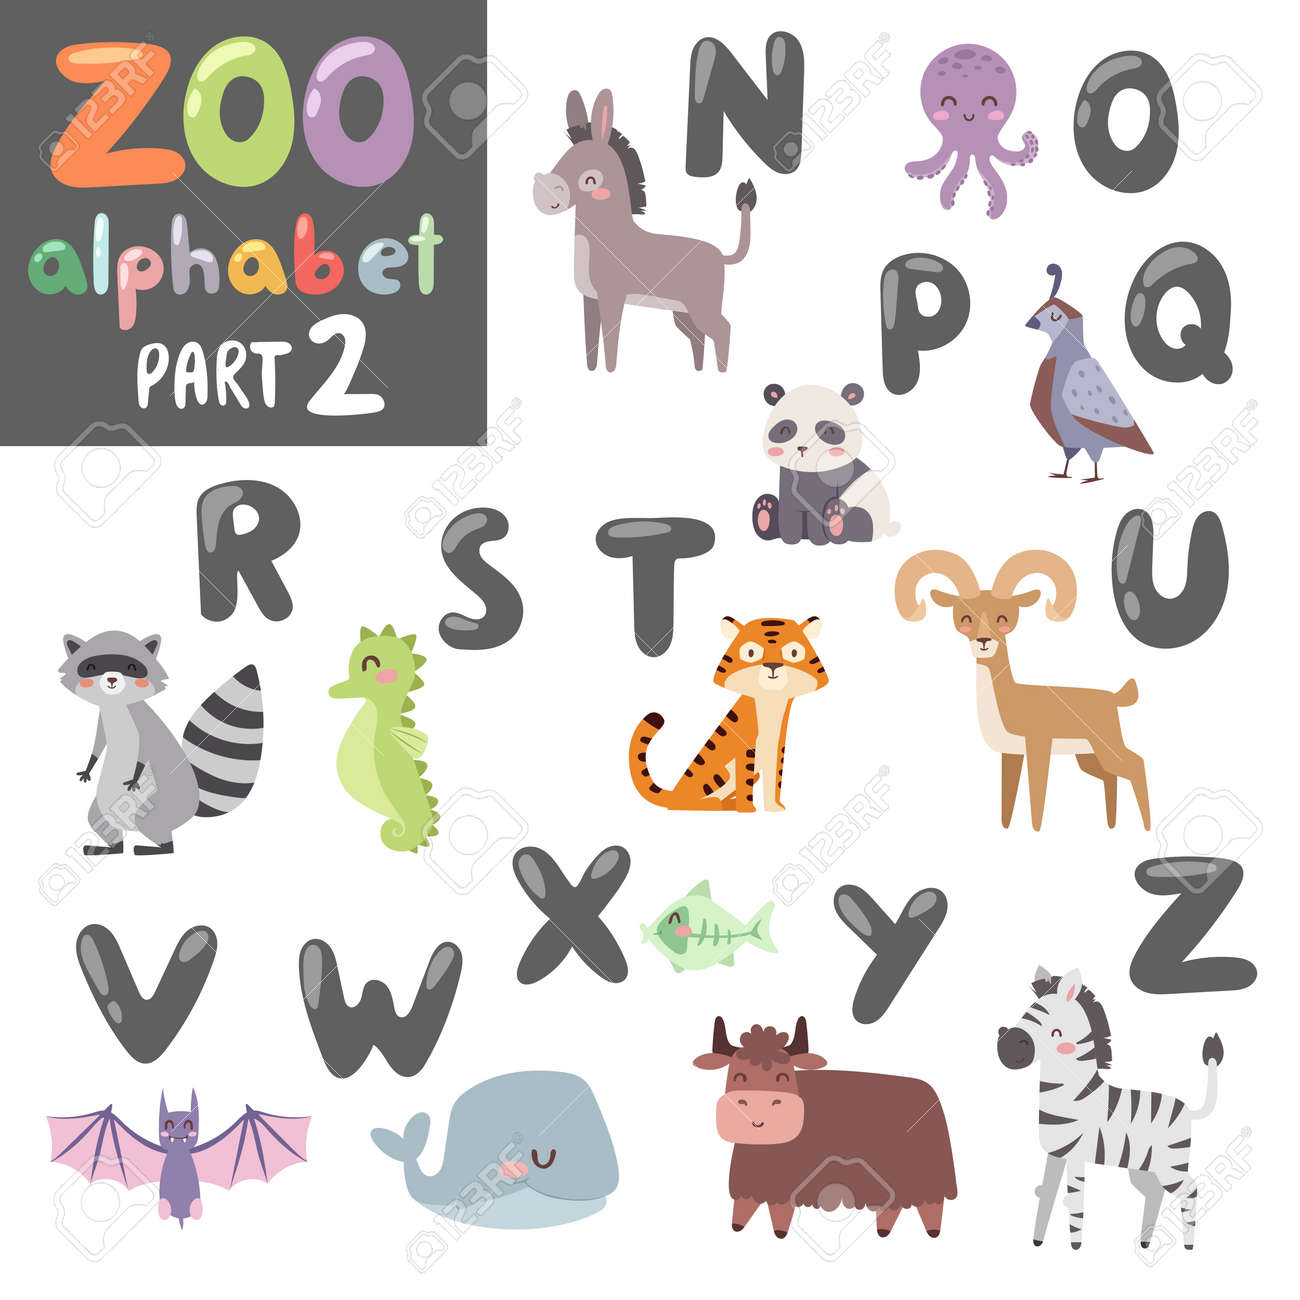 121 fish vampire stock vector illustration and royalty free fish animals alphabet symbols and wildlife animals font alphabet design vector cute vector zoo english alphabet biocorpaavc Gallery